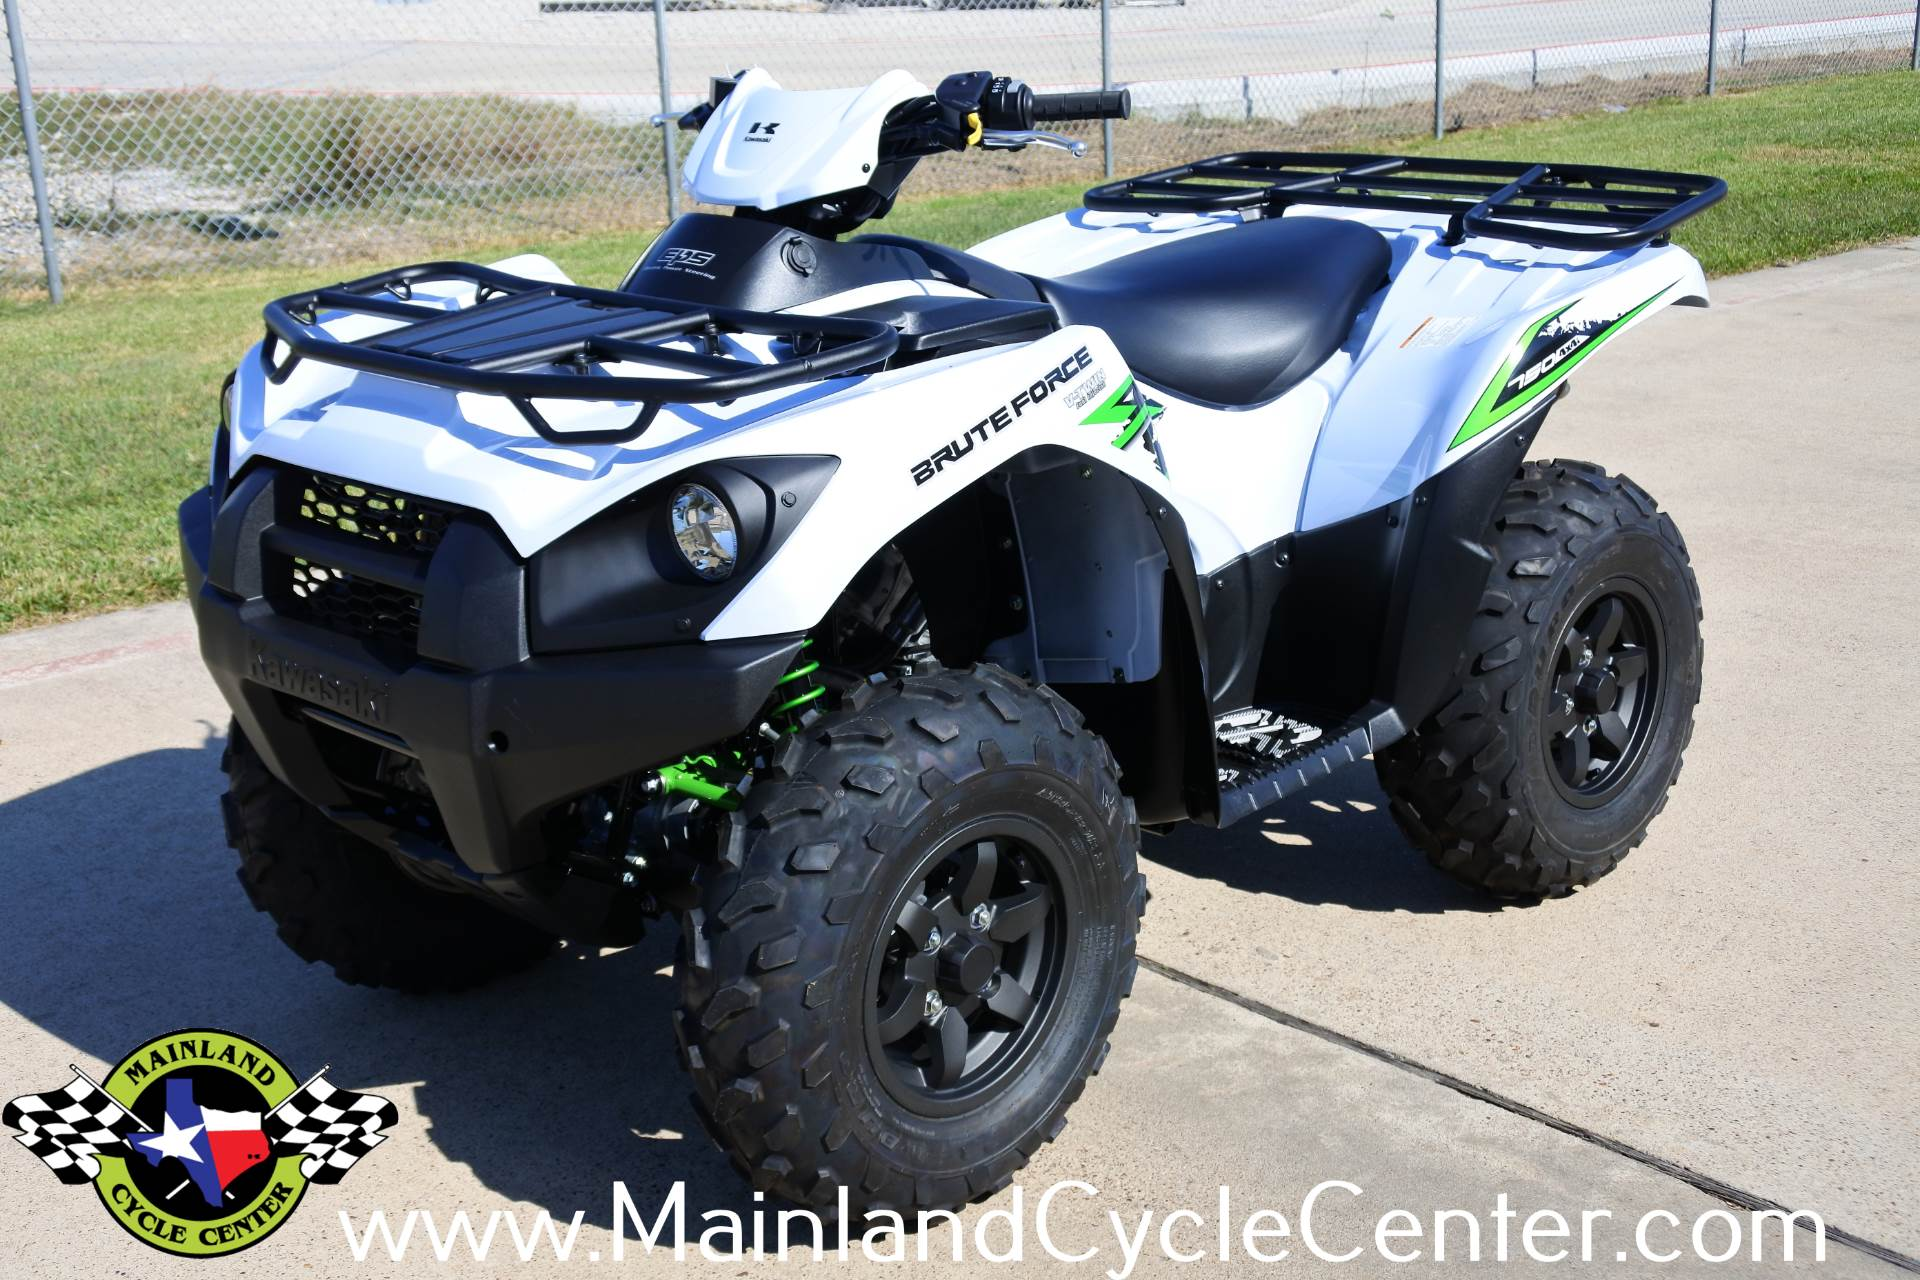 2018 Kawasaki Brute Force 750 4x4i EPS in La Marque, Texas - Photo 5